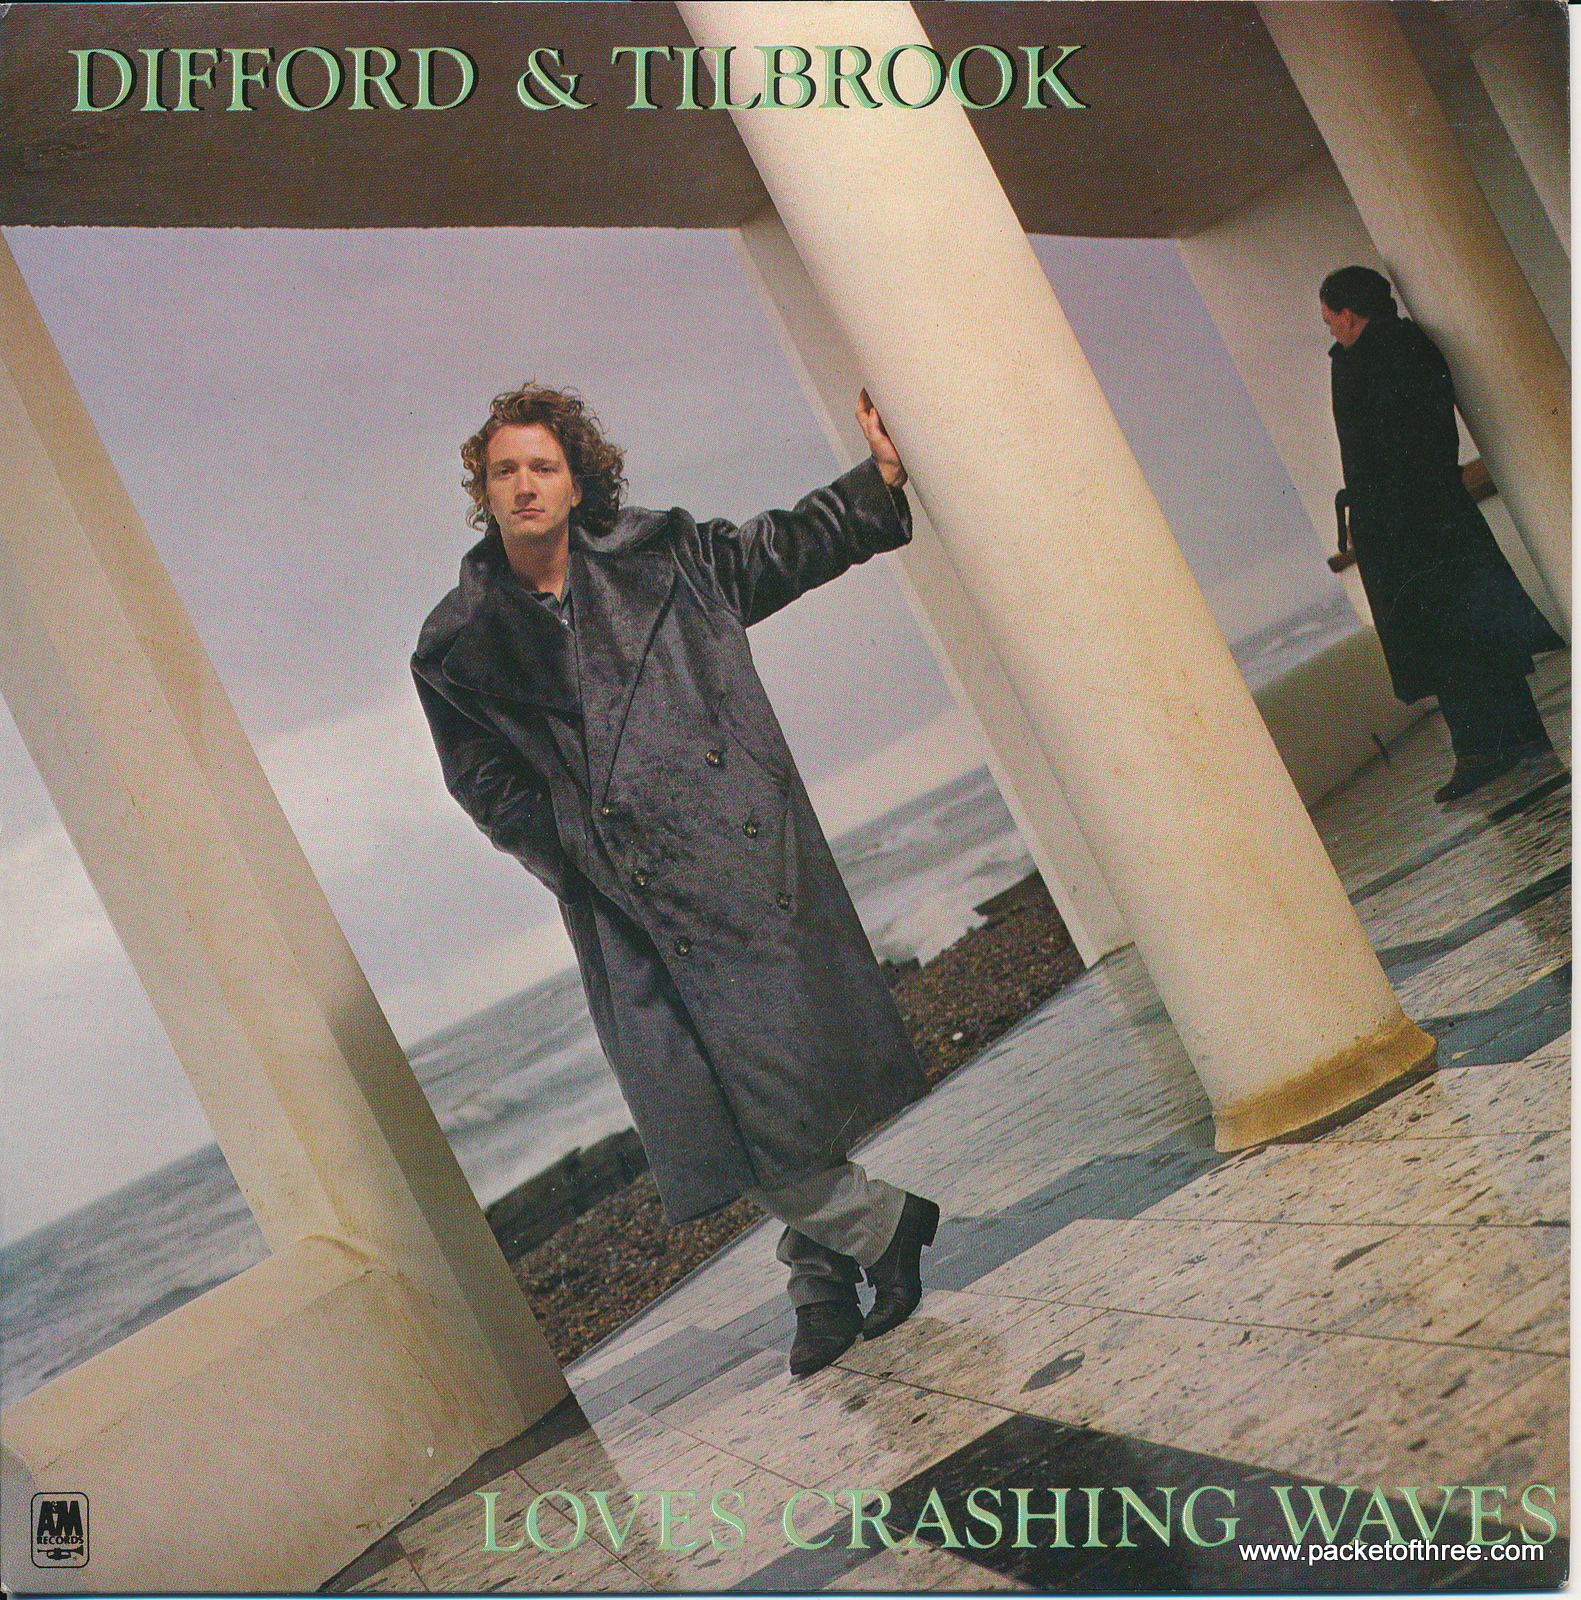 Love's Crashing Waves - UK - picture sleeve promotional copy